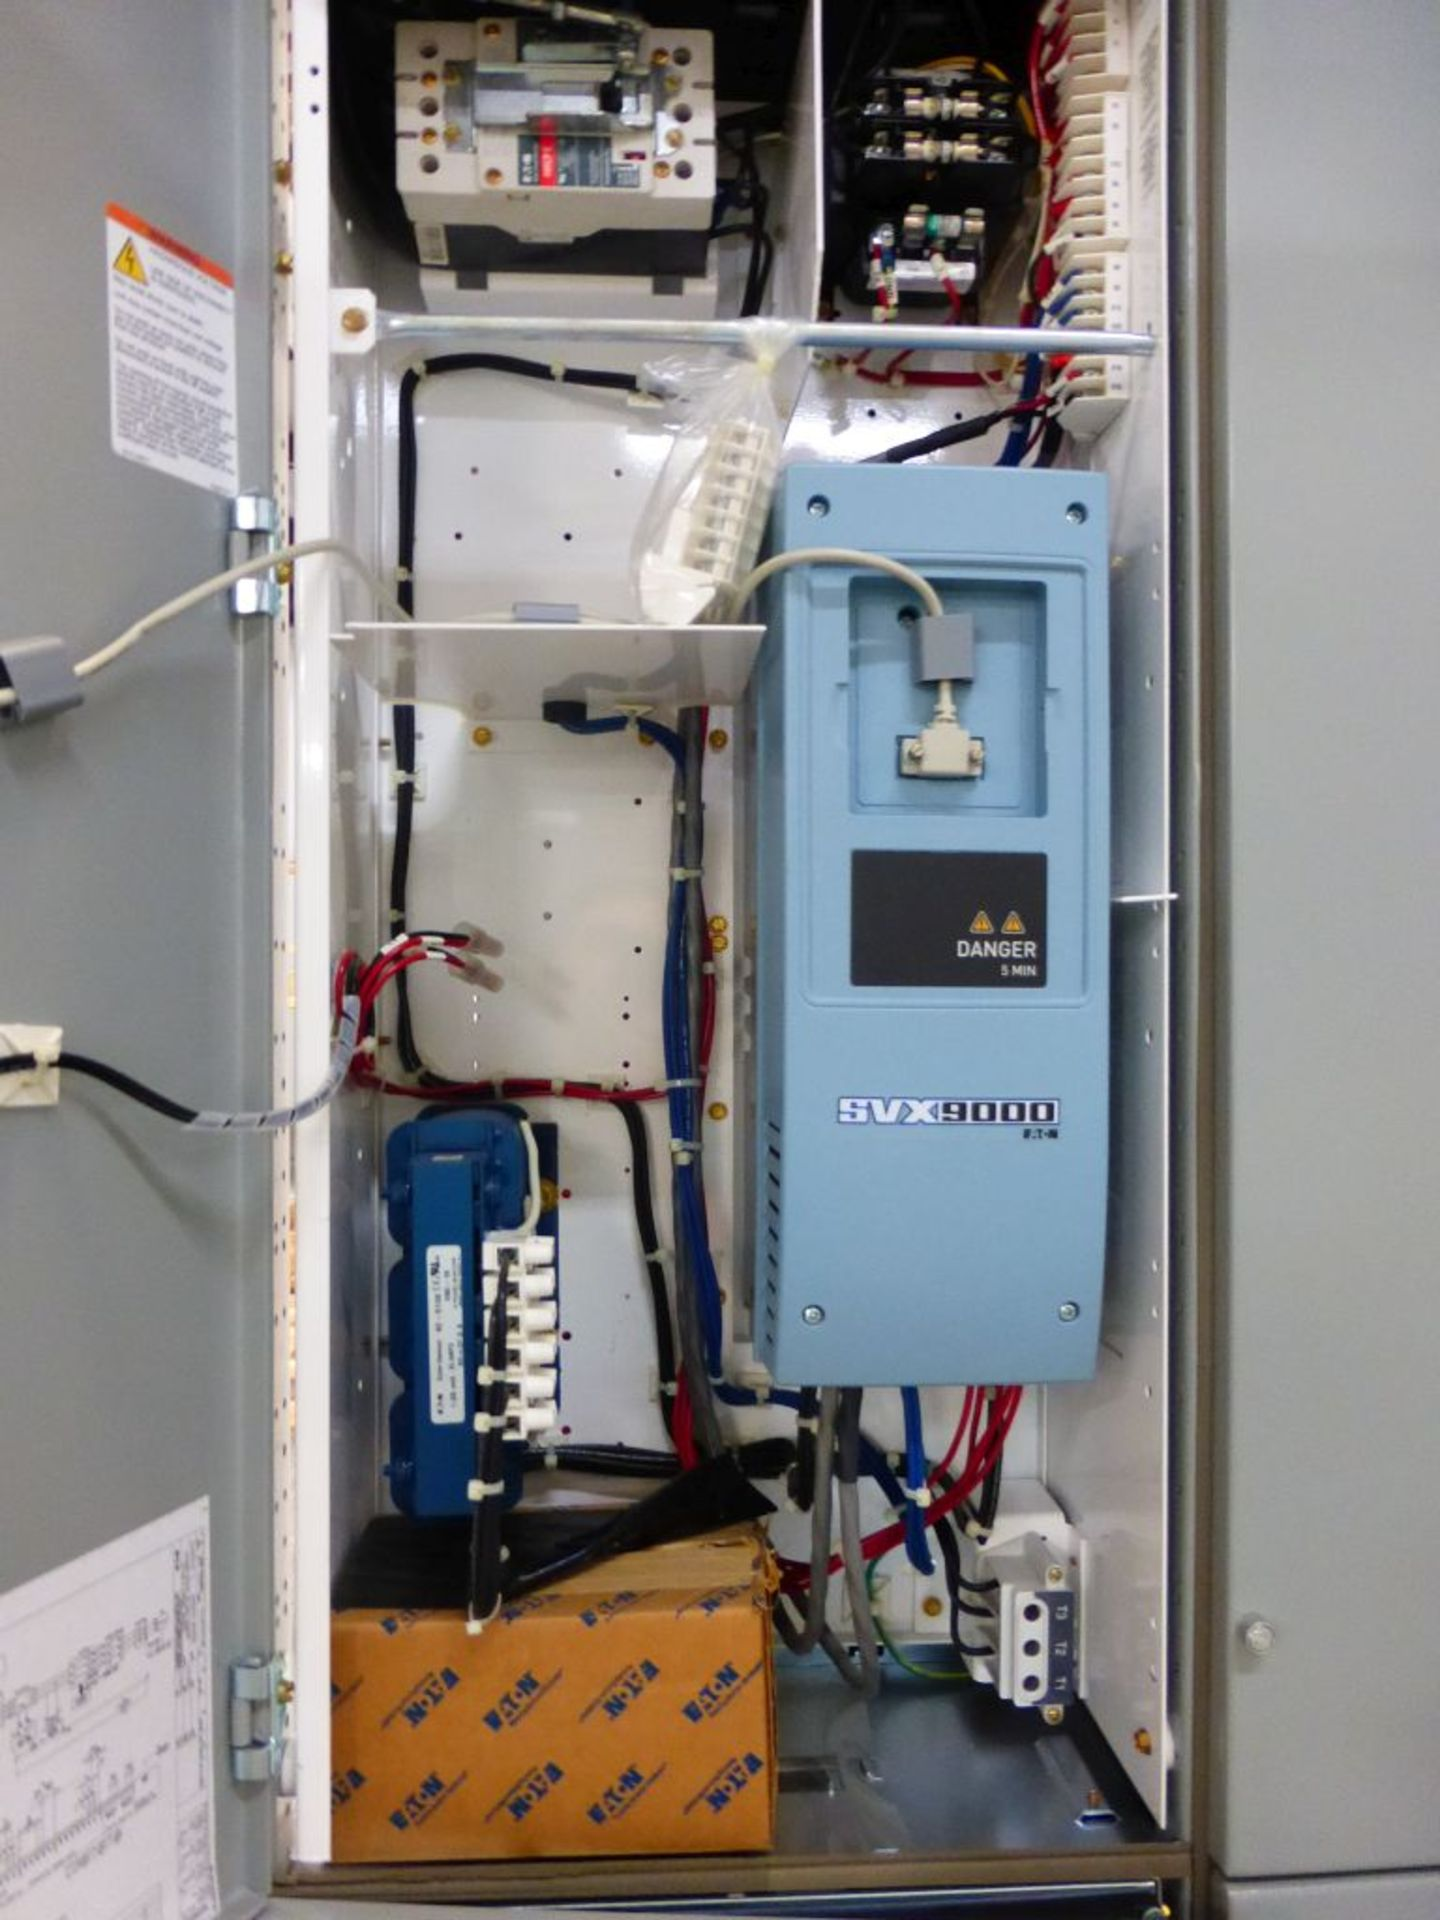 Eaton Freedom 2100 Series Motor Control Center   (4) SVX900-30A, with Eaton AF Drives, SVX9000, - Image 53 of 60